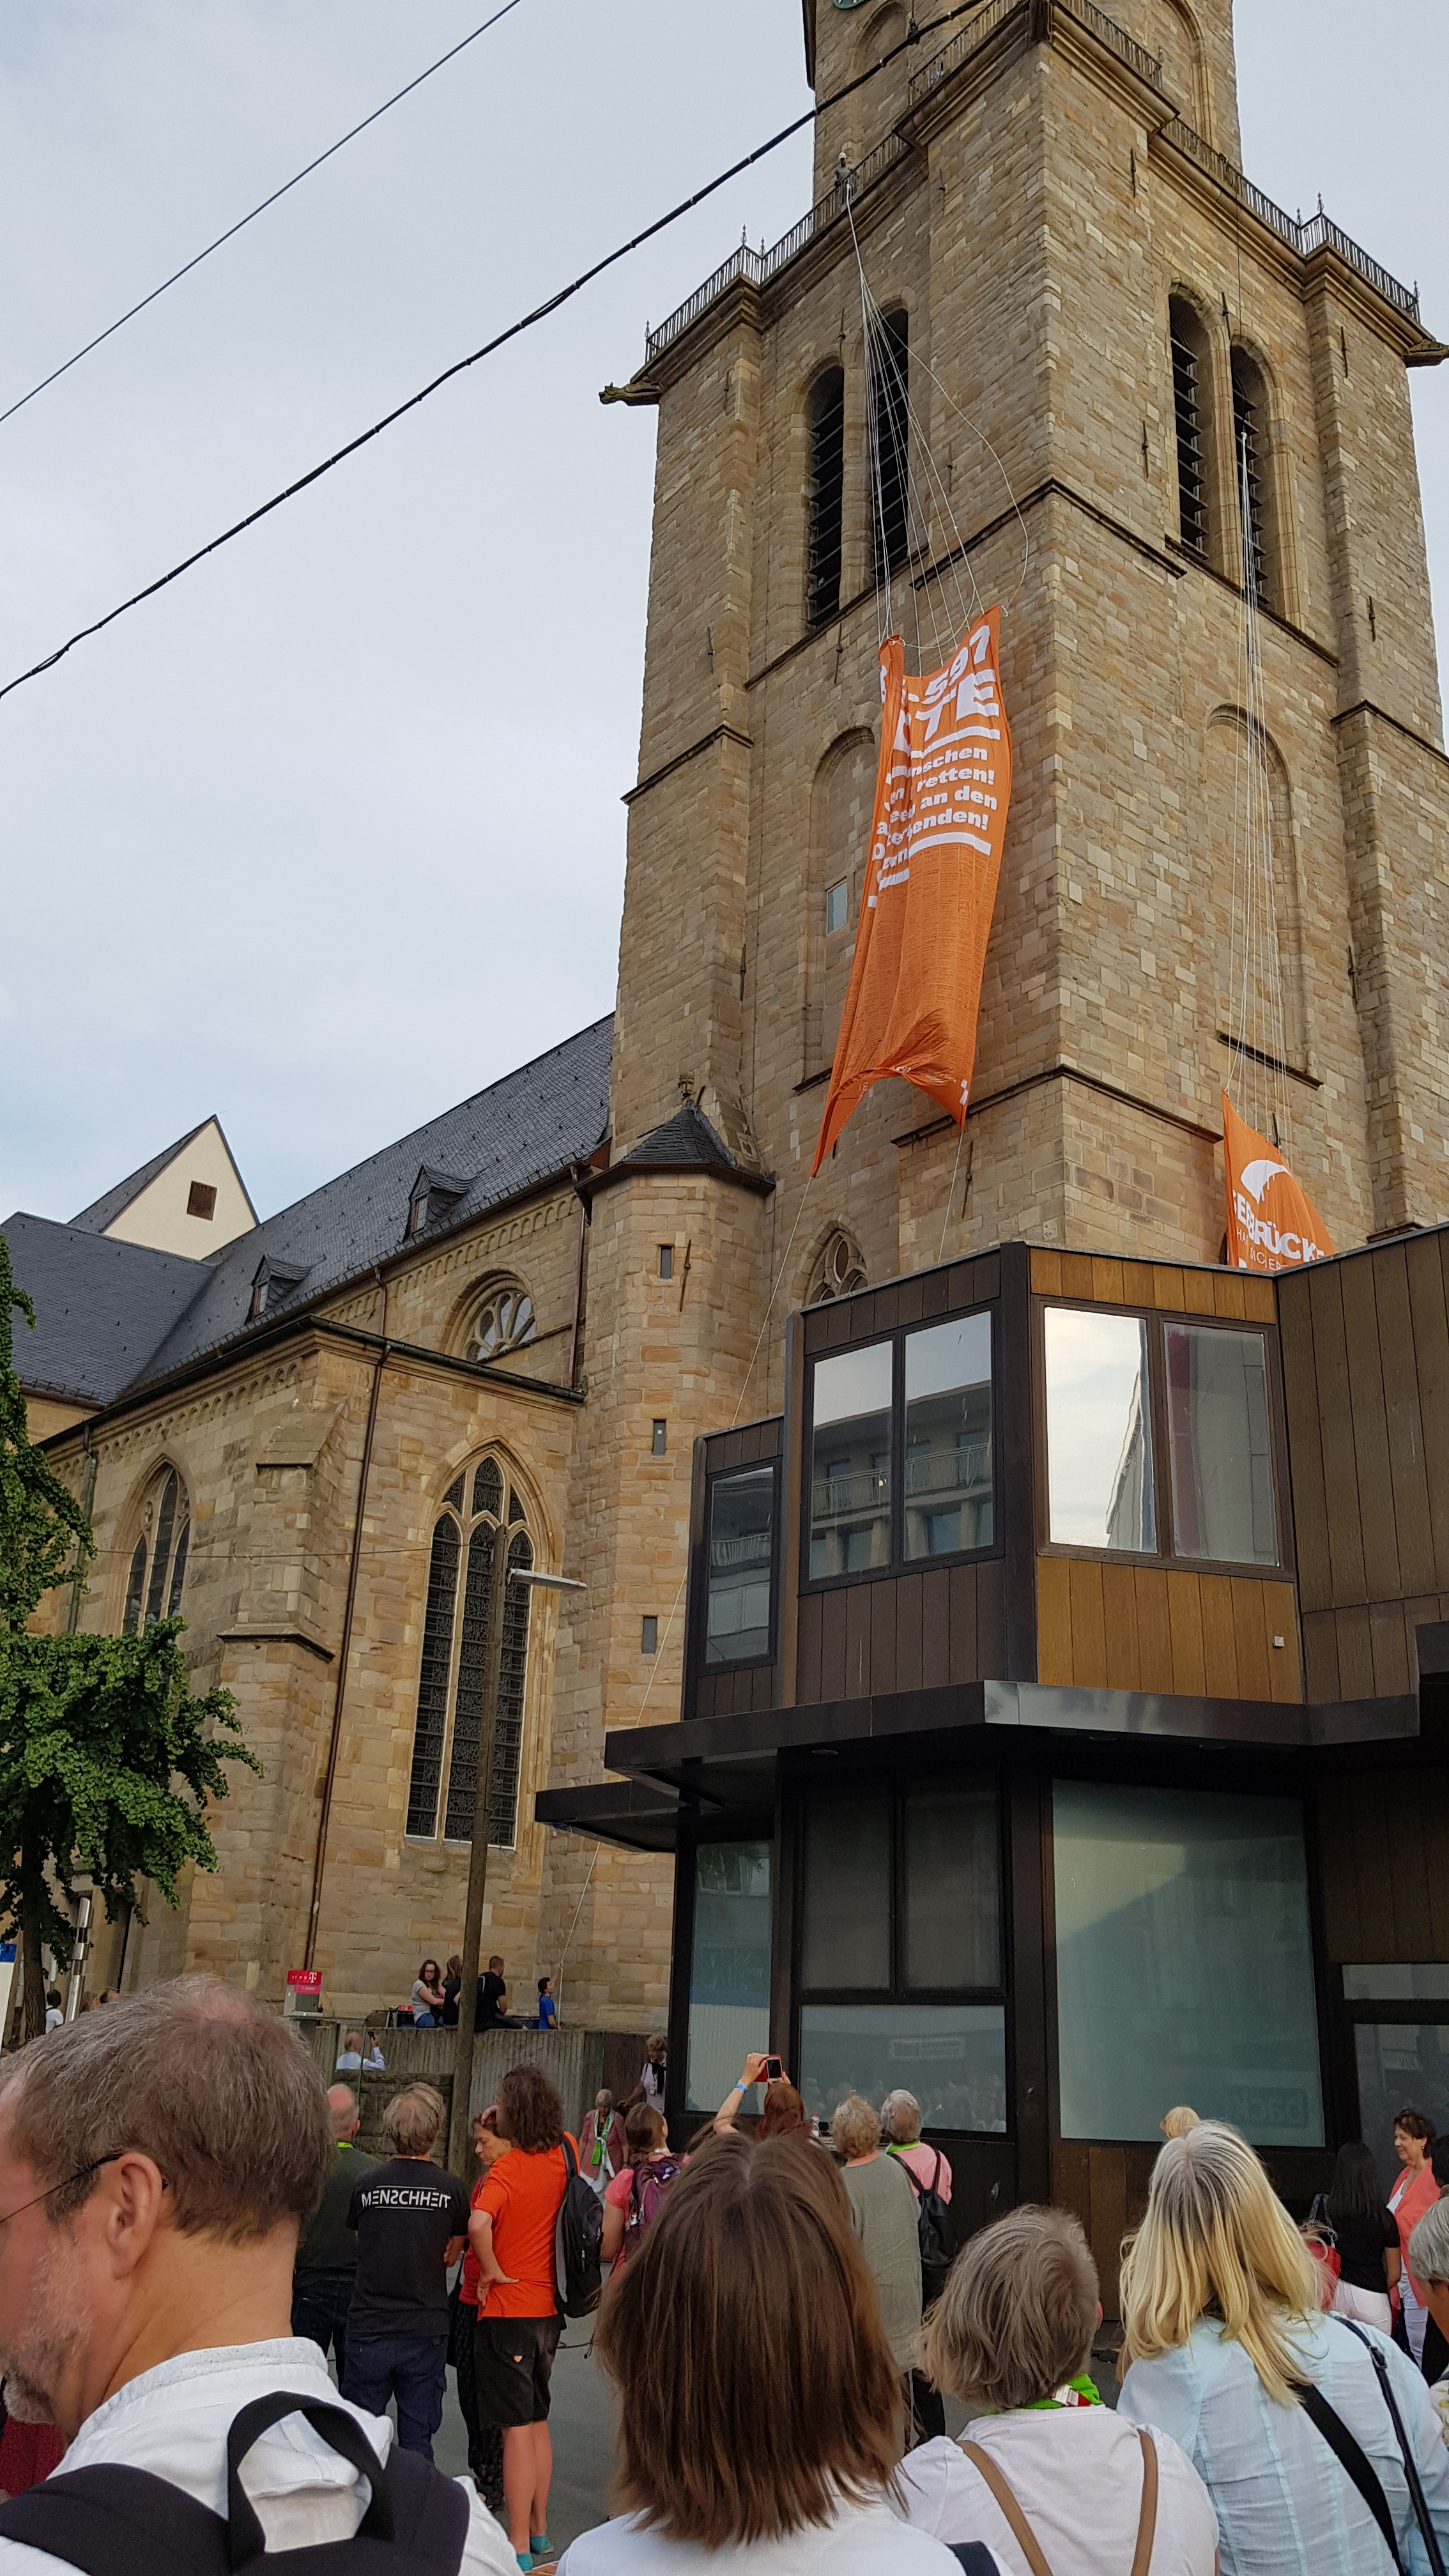 Banner with names of drowned refugees lifted at the church steeple in Dortmund. (Photo: Burkhard Paetzold)